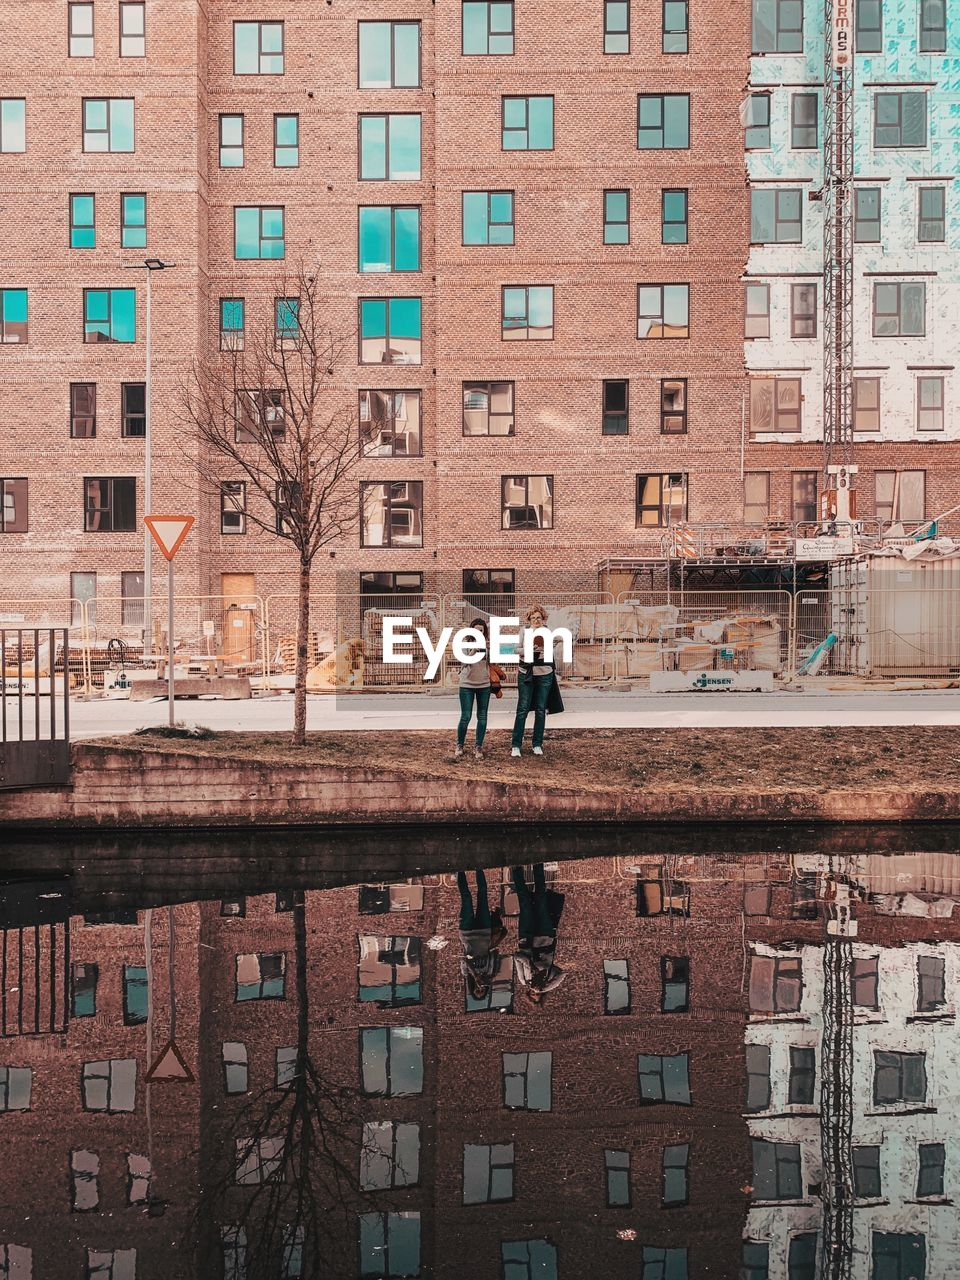 architecture, built structure, building exterior, building, window, city, reflection, residential district, men, two people, water, real people, people, day, nature, outdoors, wall, city life, tree, canal, apartment